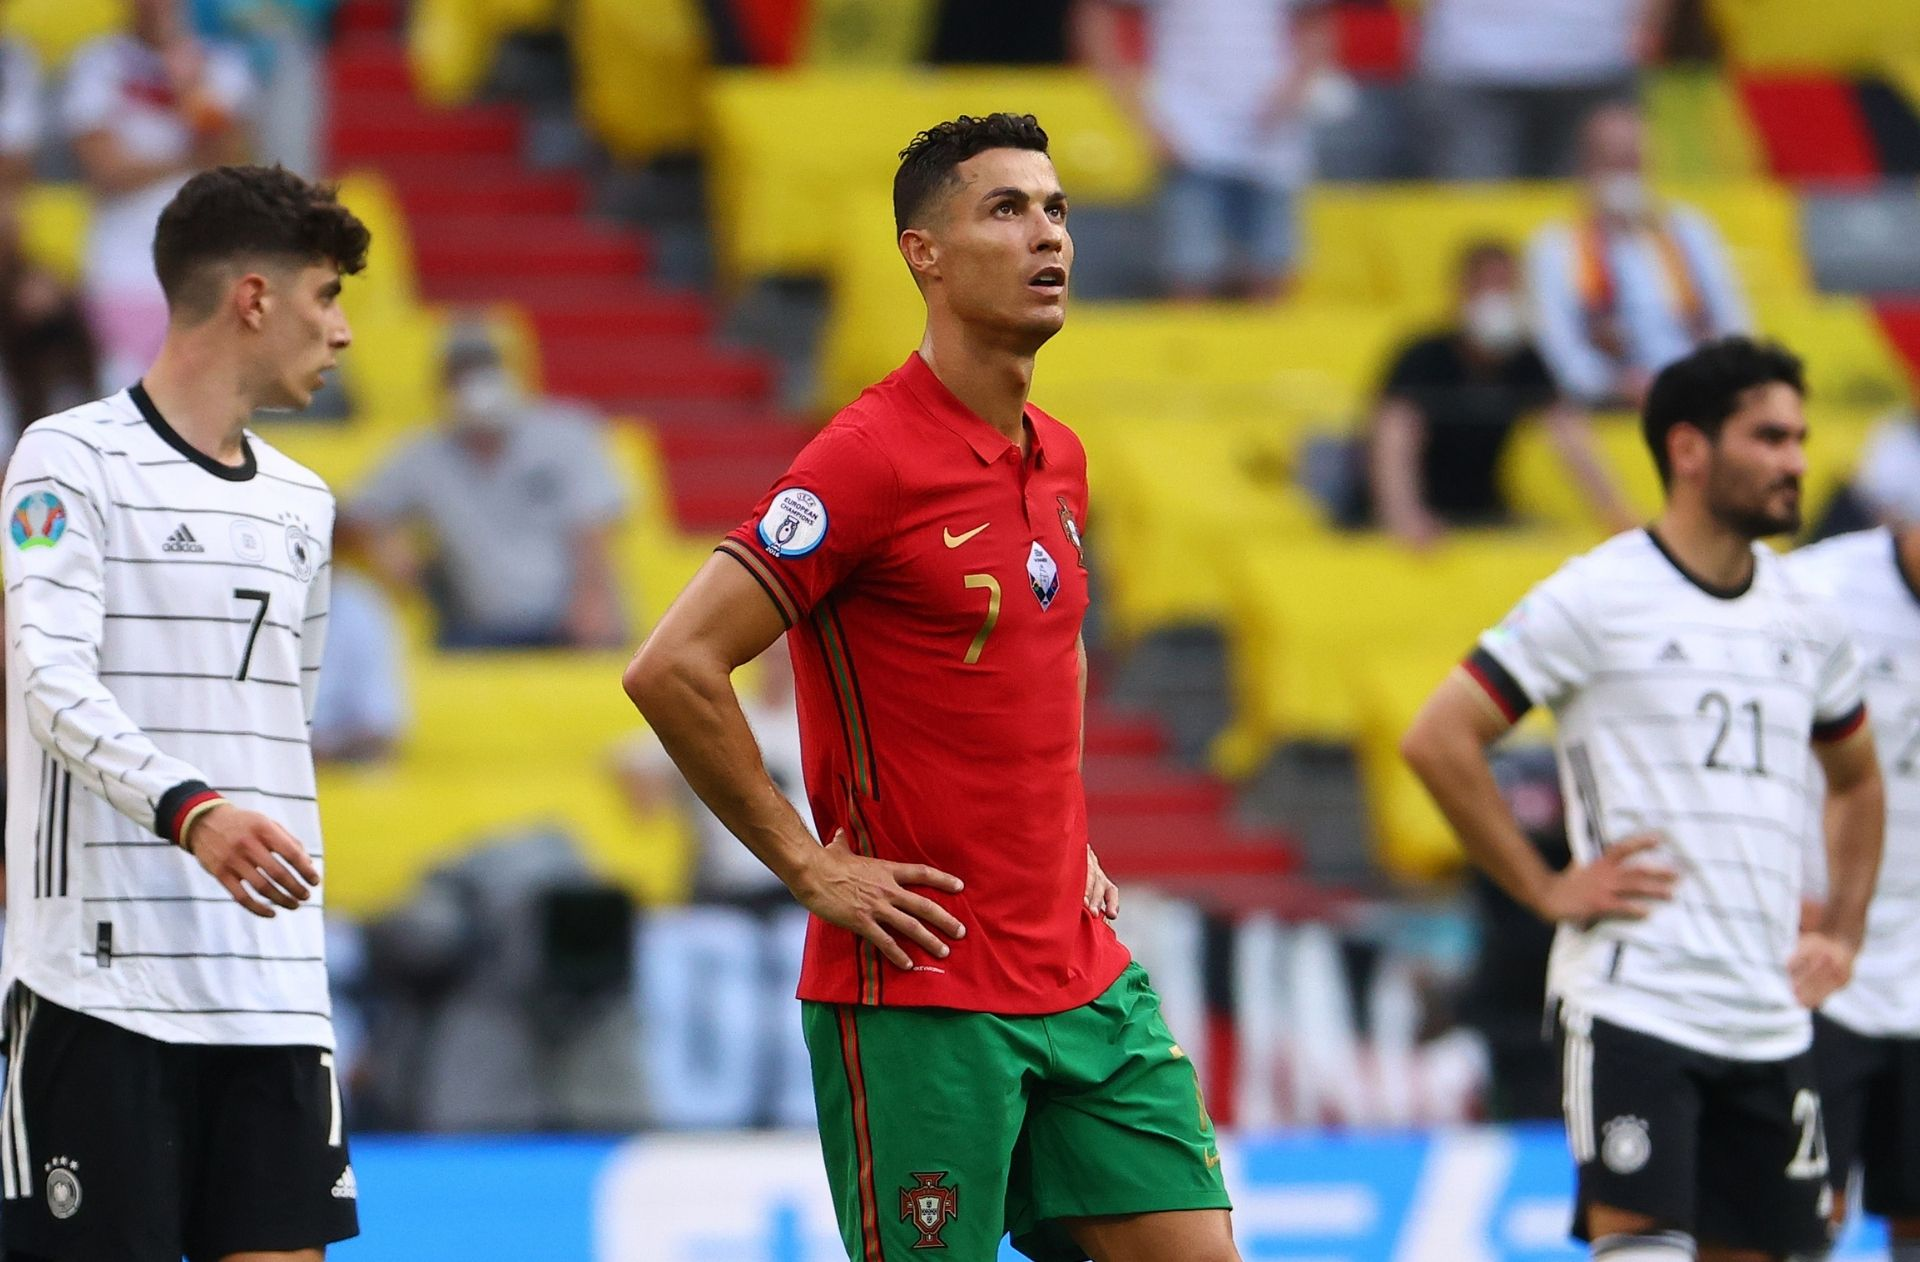 Euro 2020: Germany Defeat Portugal